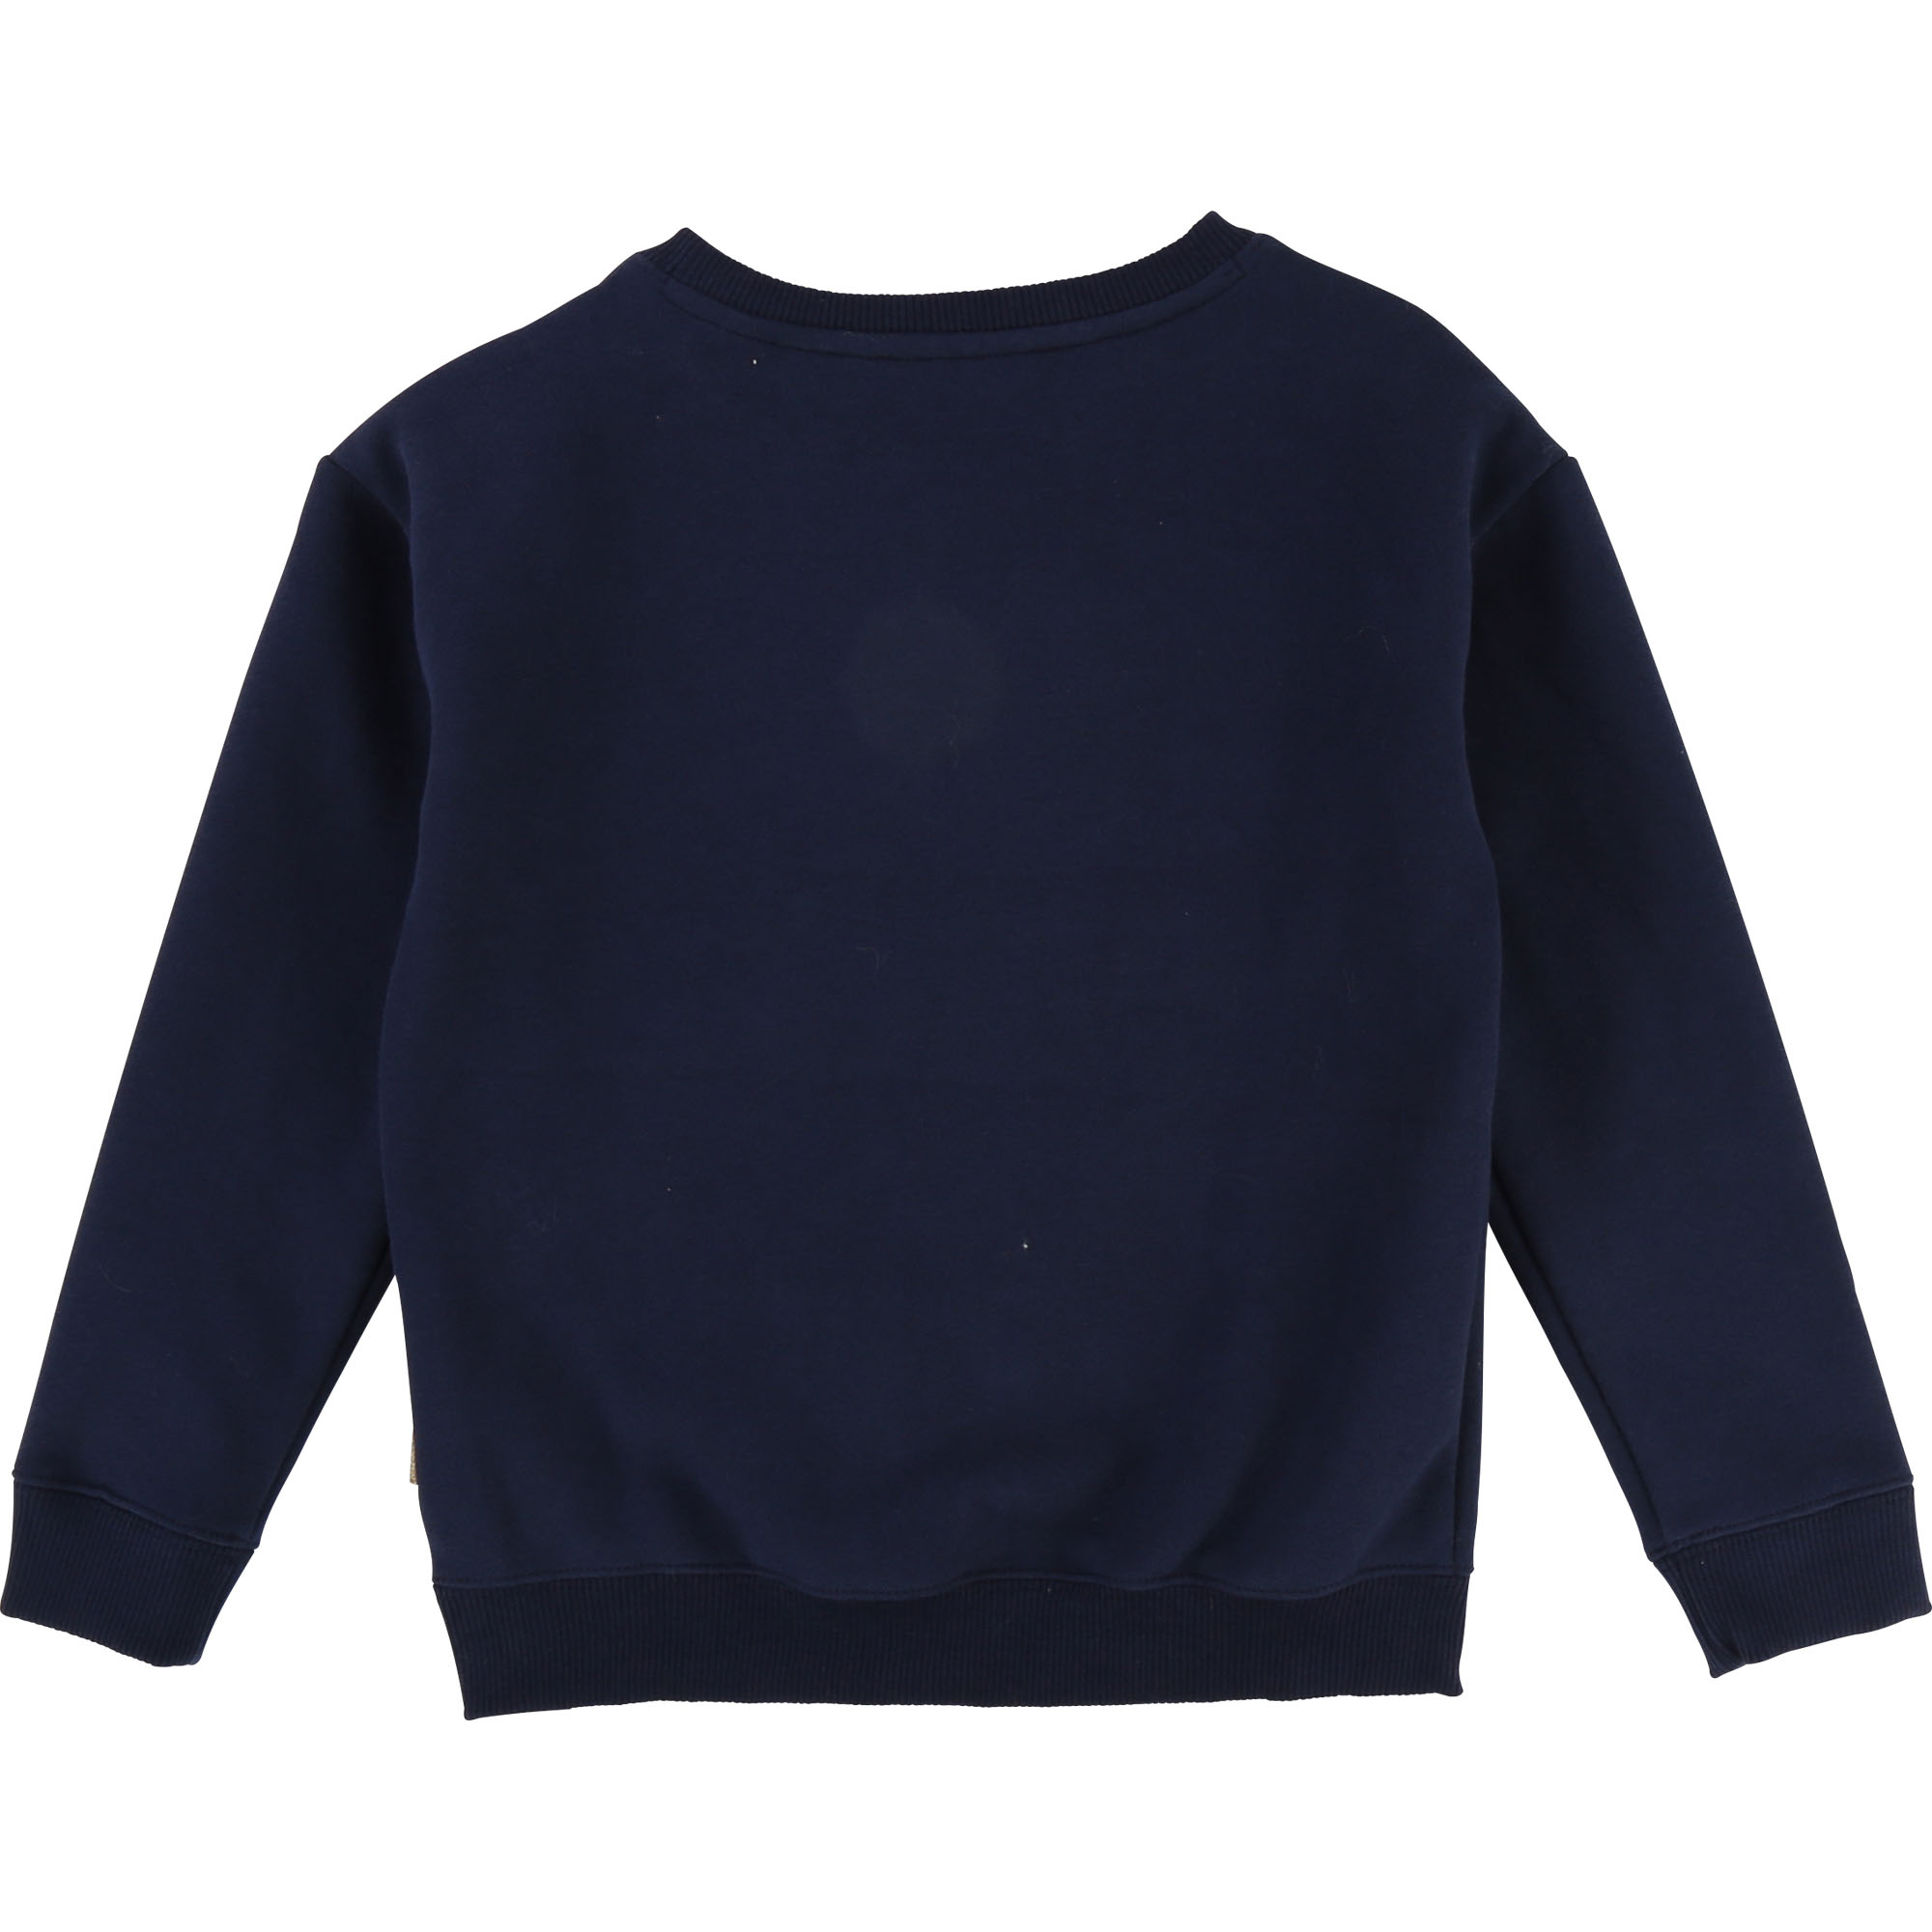 Sweat-shirt en molleton THE MARC JACOBS pour FILLE